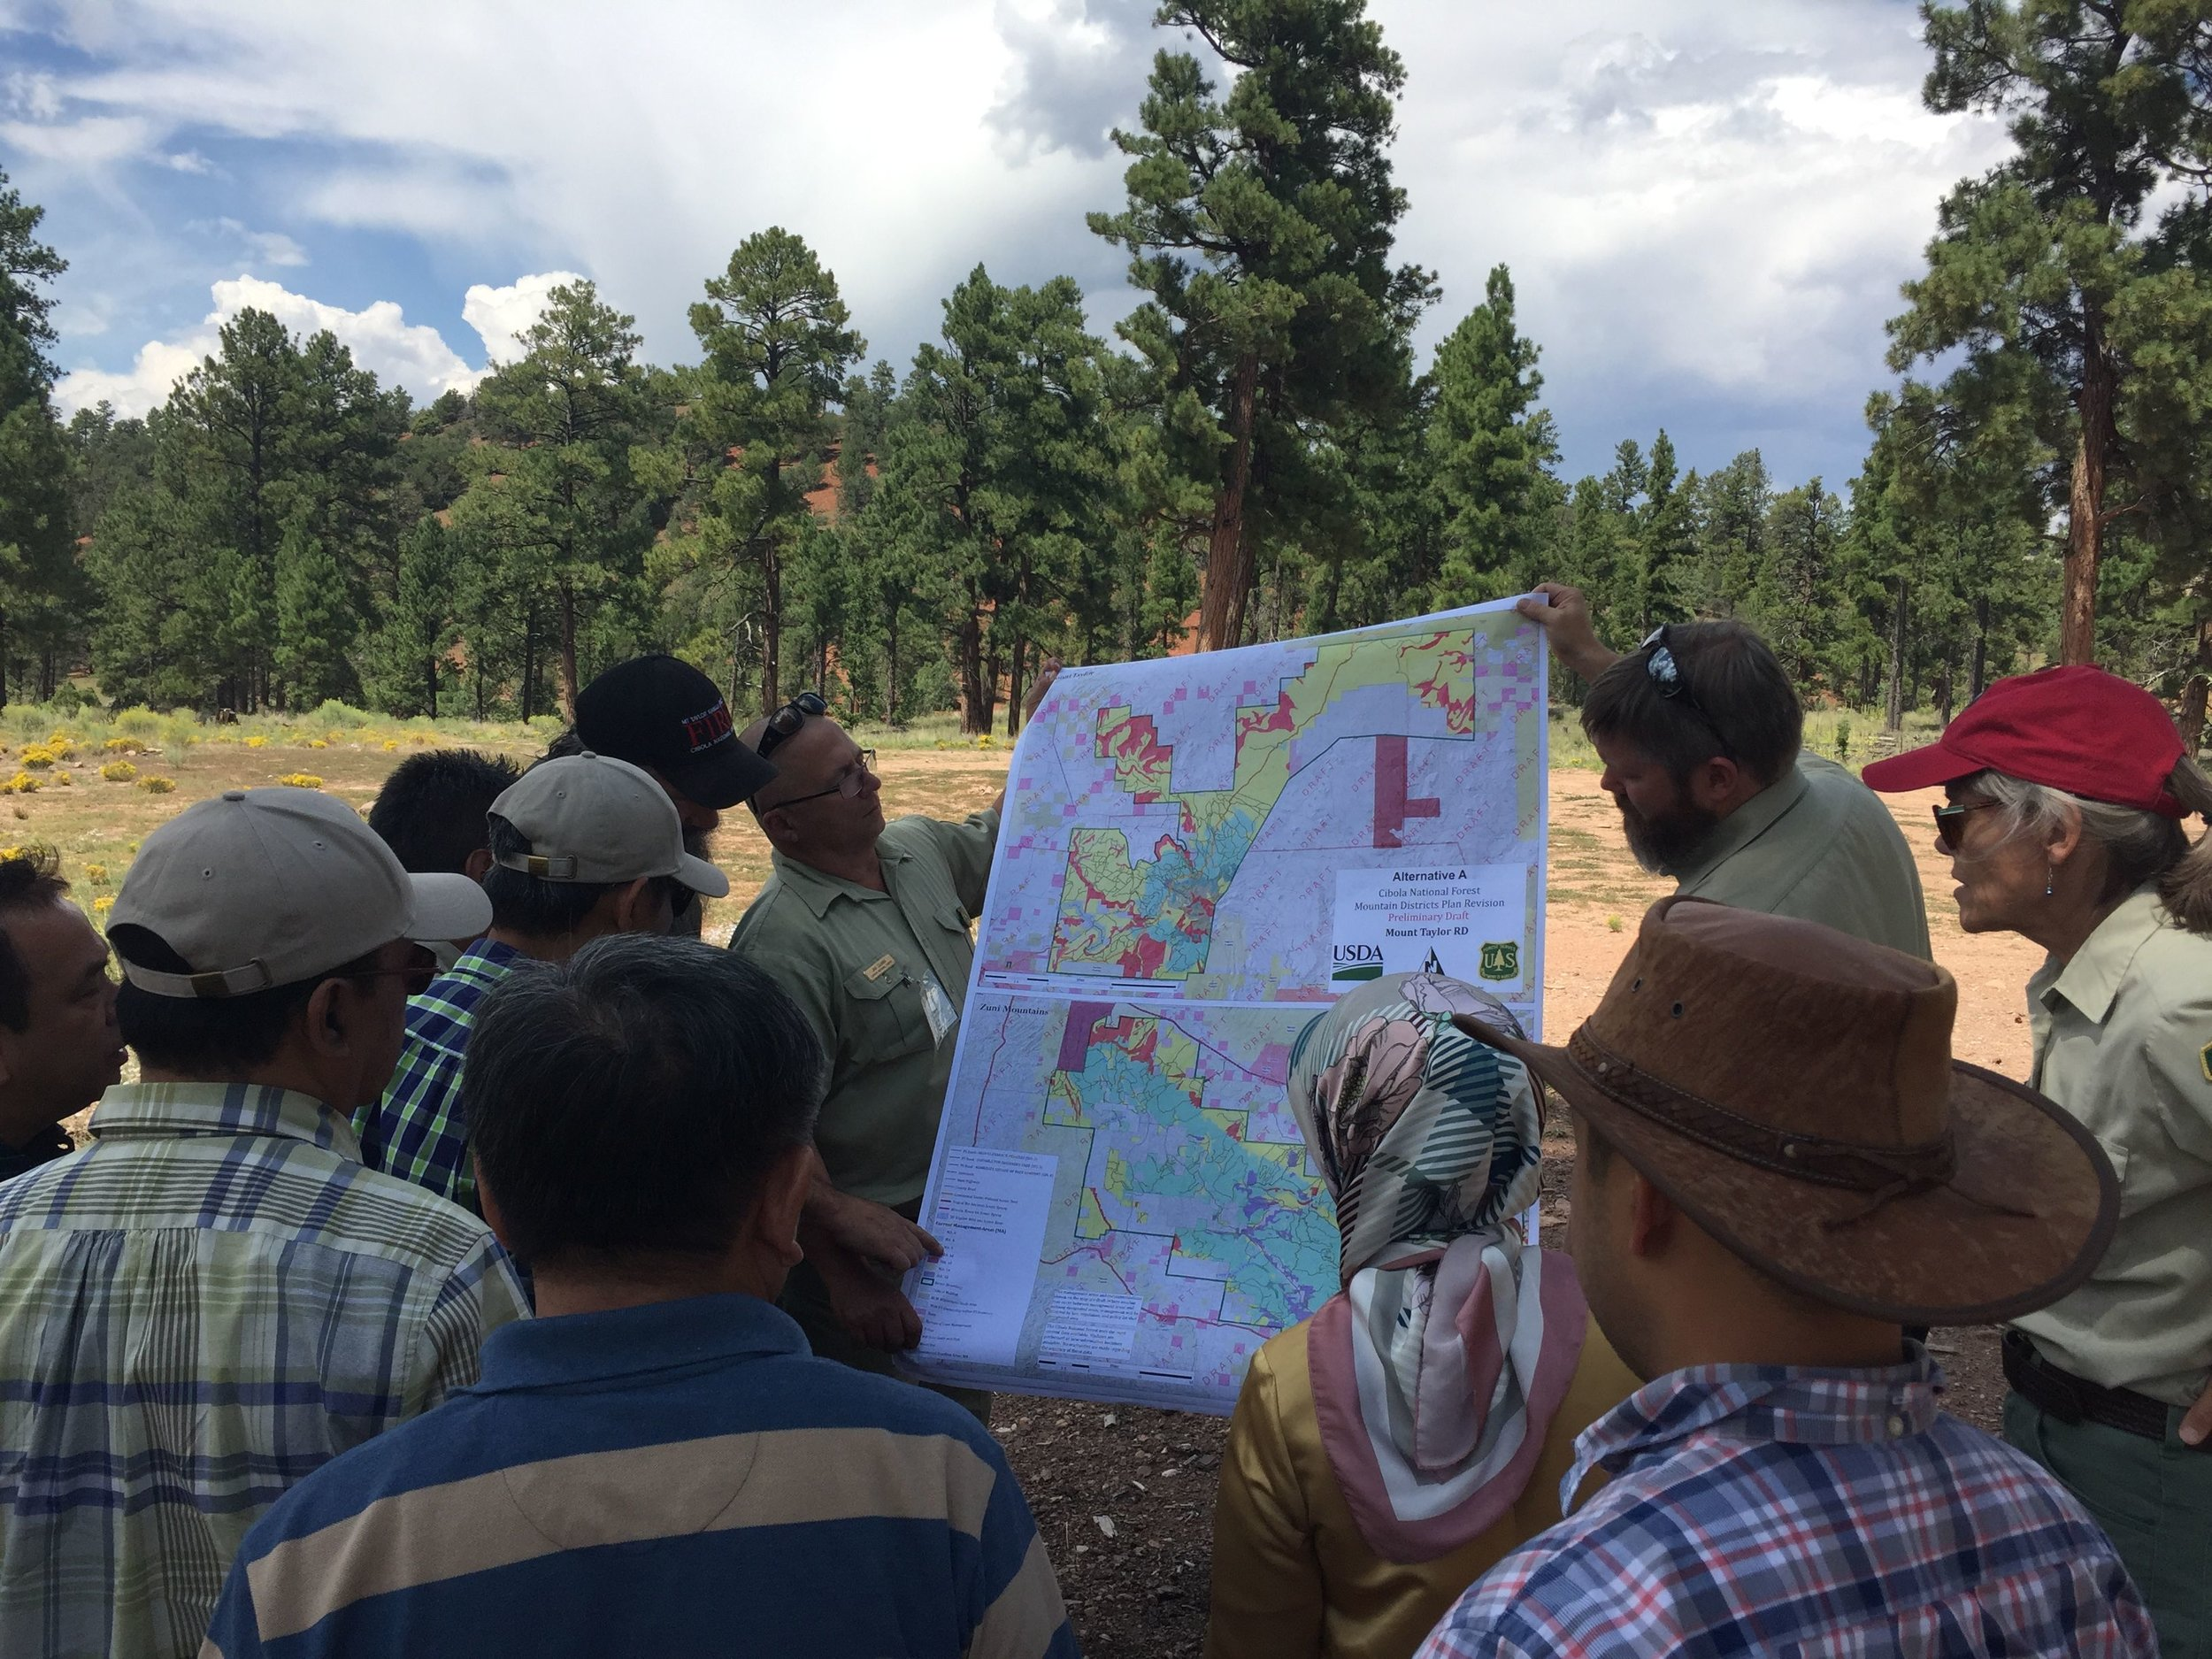 Jim Gumm, Matt Rau, and Elaine Kohrman share a draft map of proposed work in the Mt. Taylor Ranger District